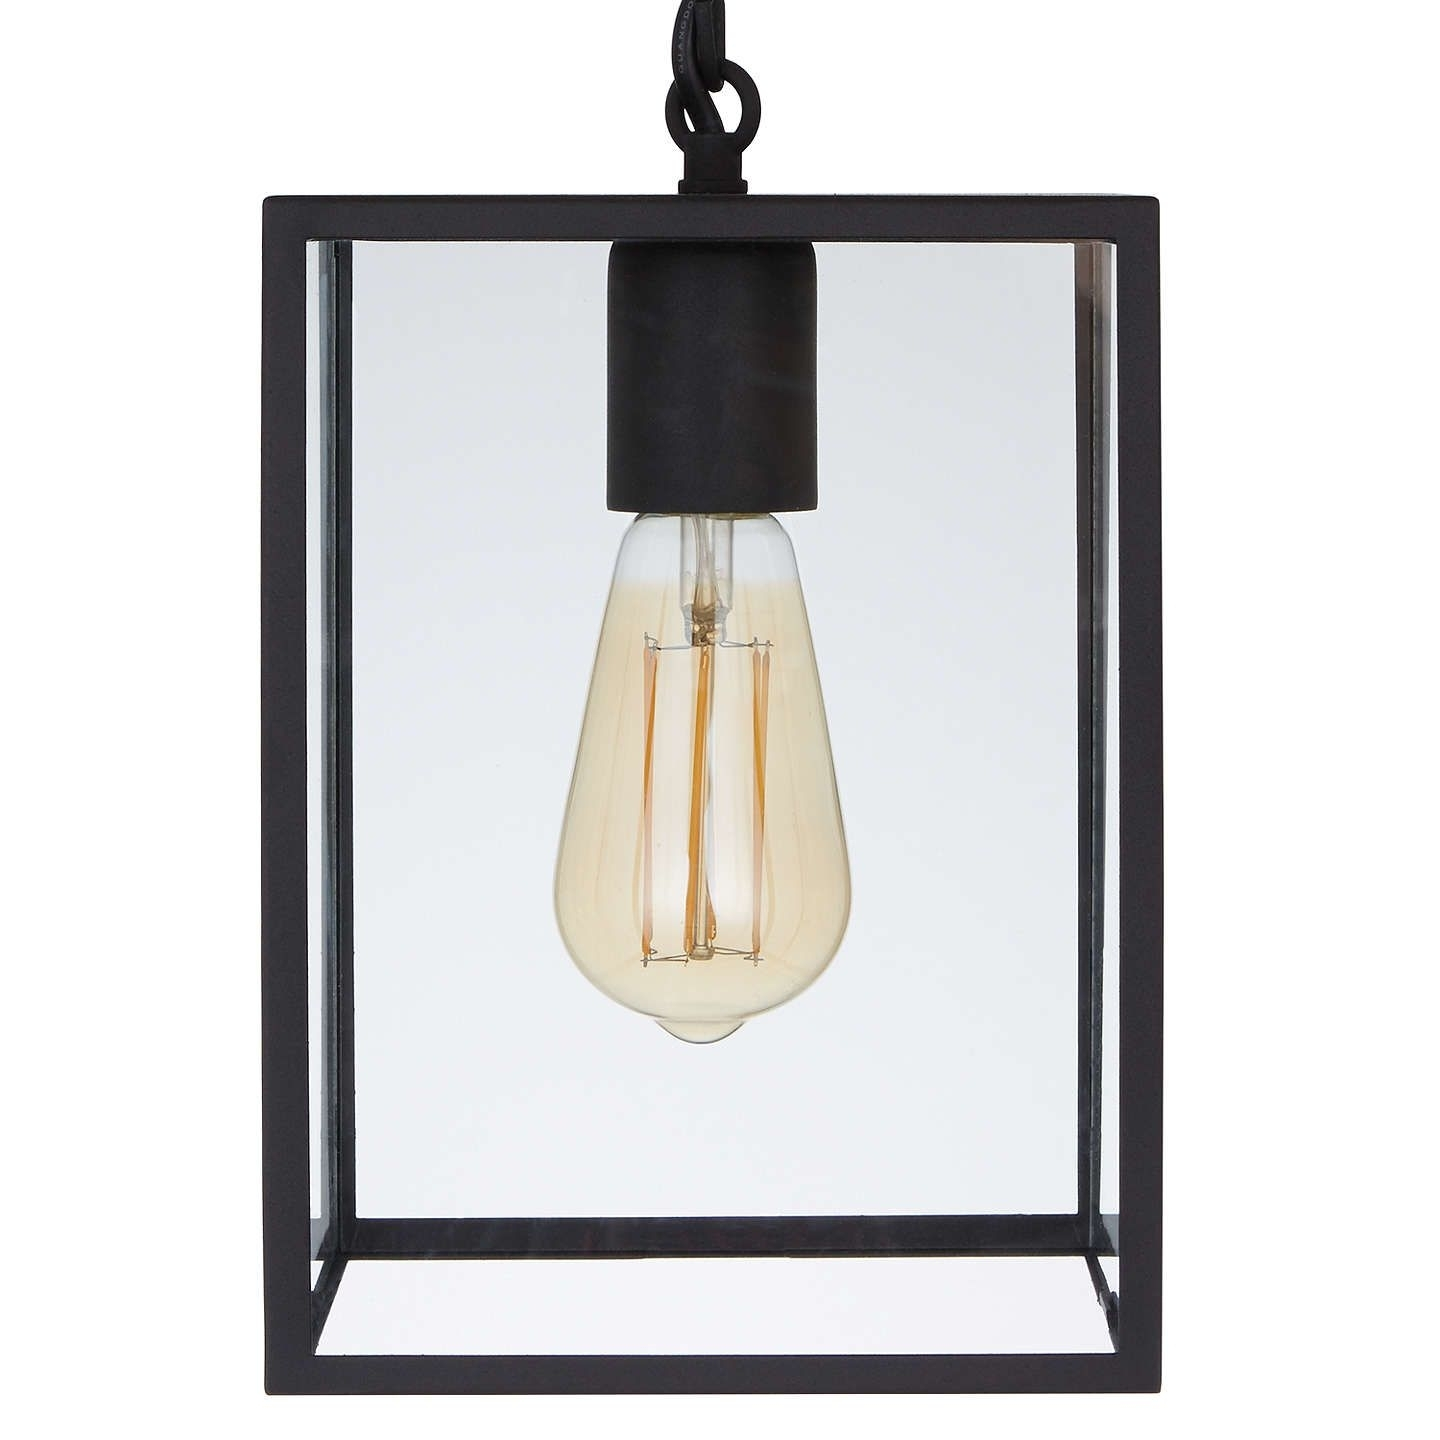 Astro Homefield Outdoor Pendant Ceiling Light, Black | Ceiling, John Throughout John Lewis Outdoor Ceiling Lights (#4 of 15)